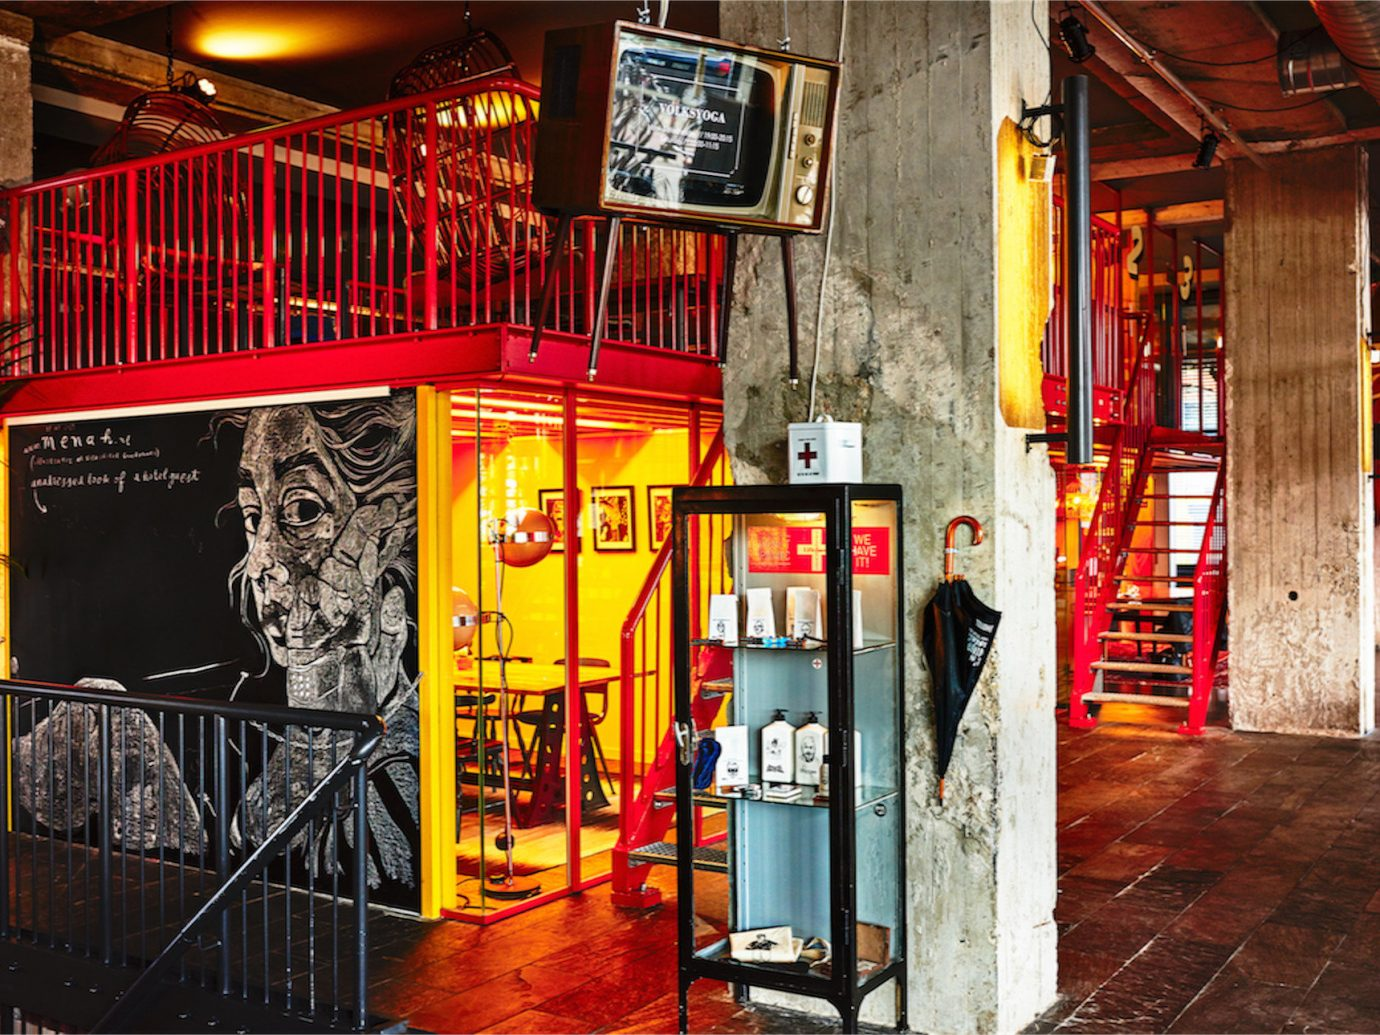 ambient lighting artistic artsy colorful foyer Hip Hotels industrial lights Lobby space staircase trendy urban building color road urban area street art alley